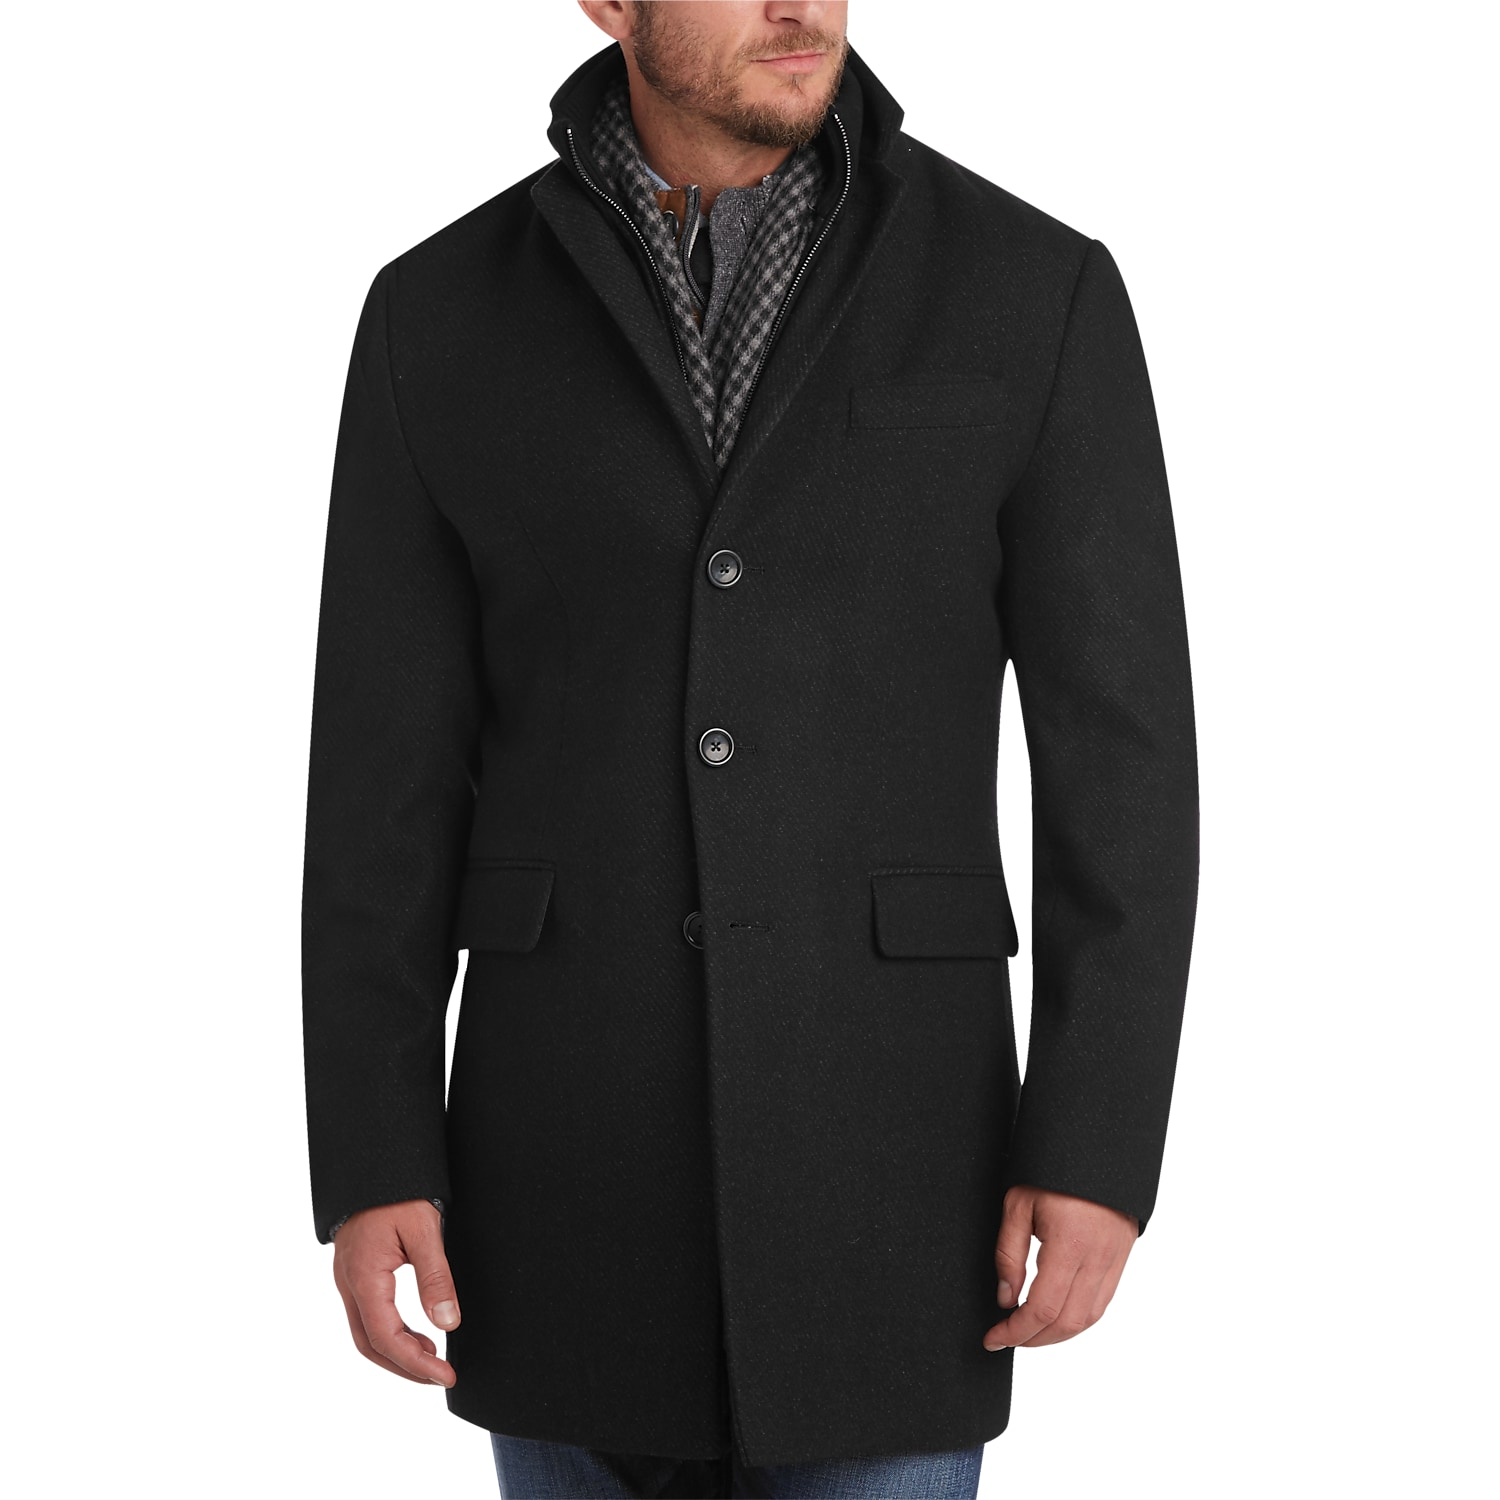 Barbour women s double breasted navy peacoat